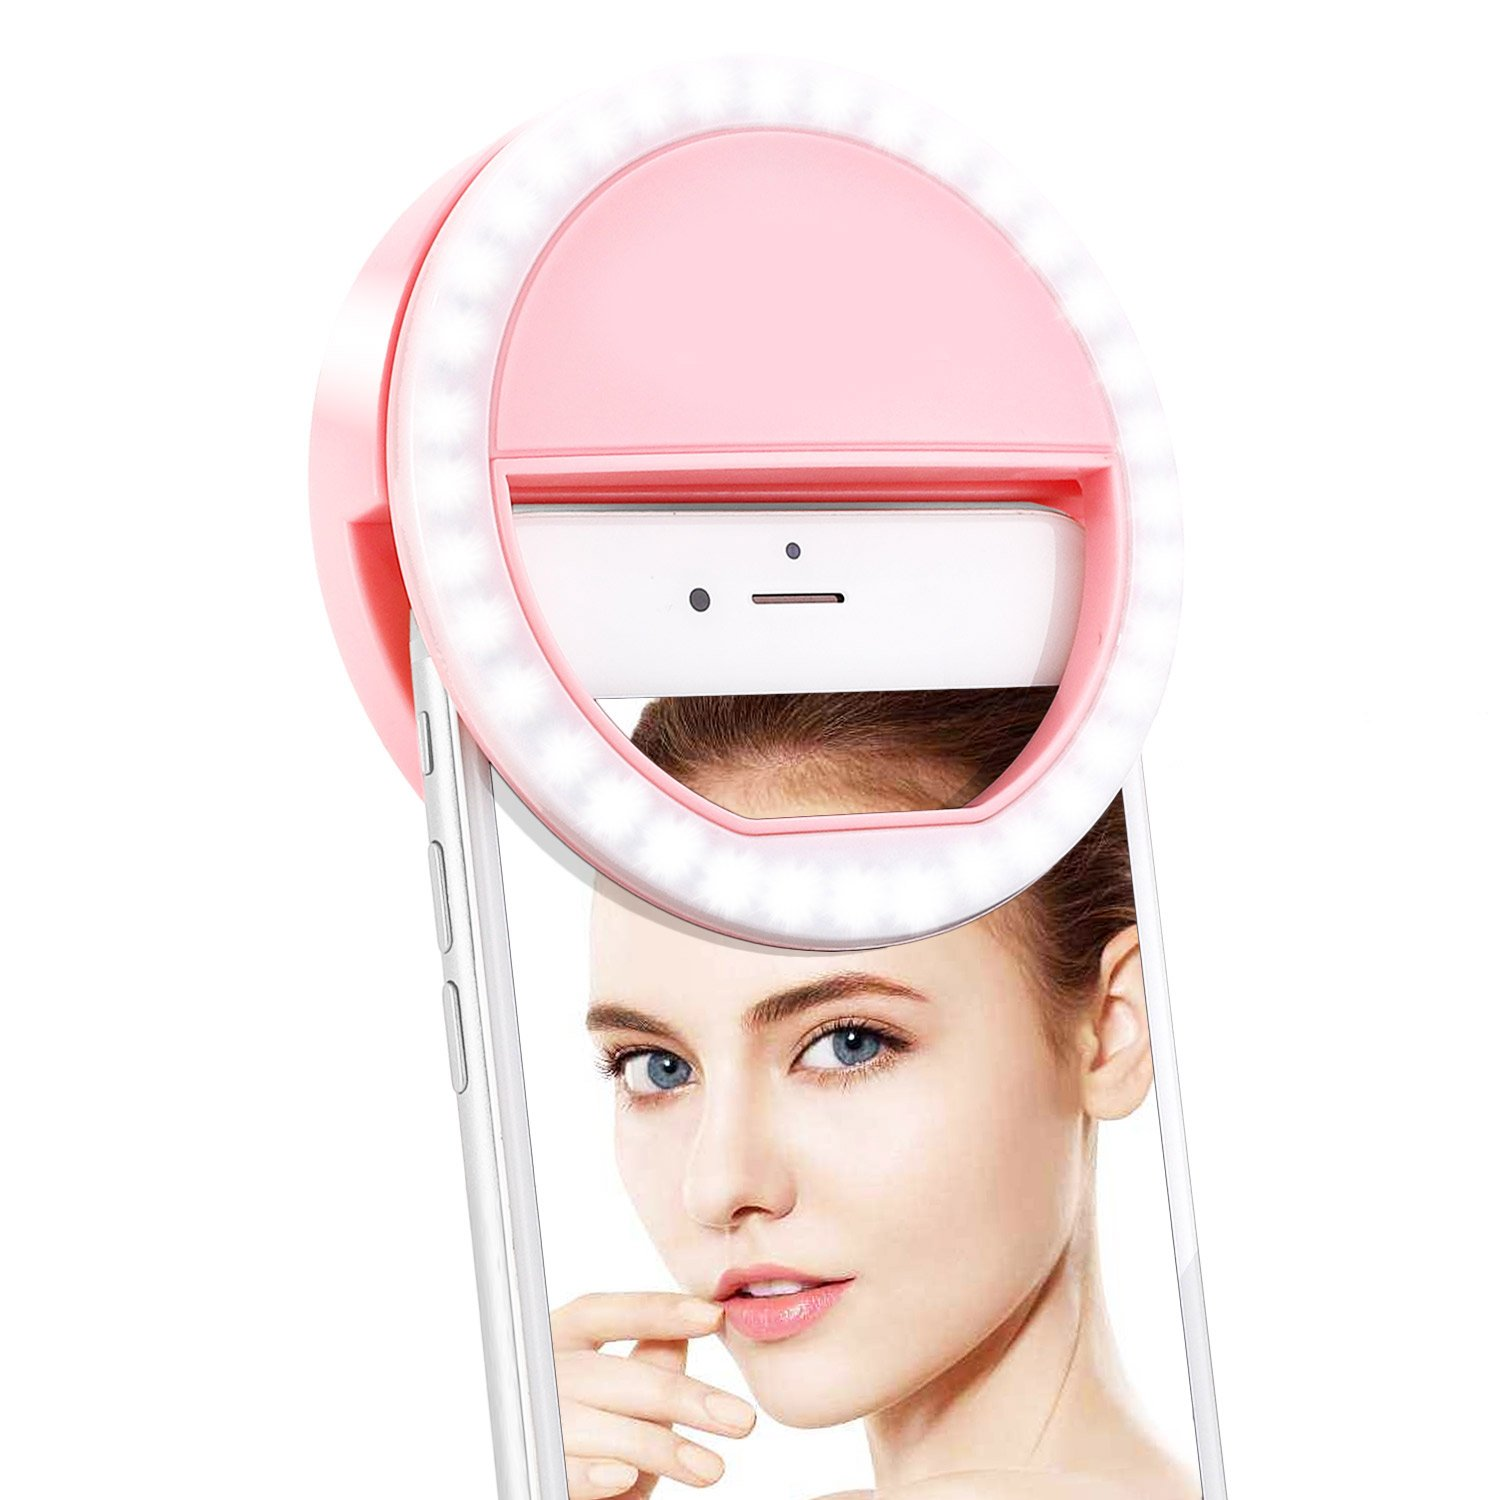 Fodizi Selfie Ring Light for Phone Camera [Rechargable Battery] [36 LED] Clip On Light Makeup Light Streaming Light for iPhone iPad Sumsung Galaxy Photography,Facebook Live Videos - Pink